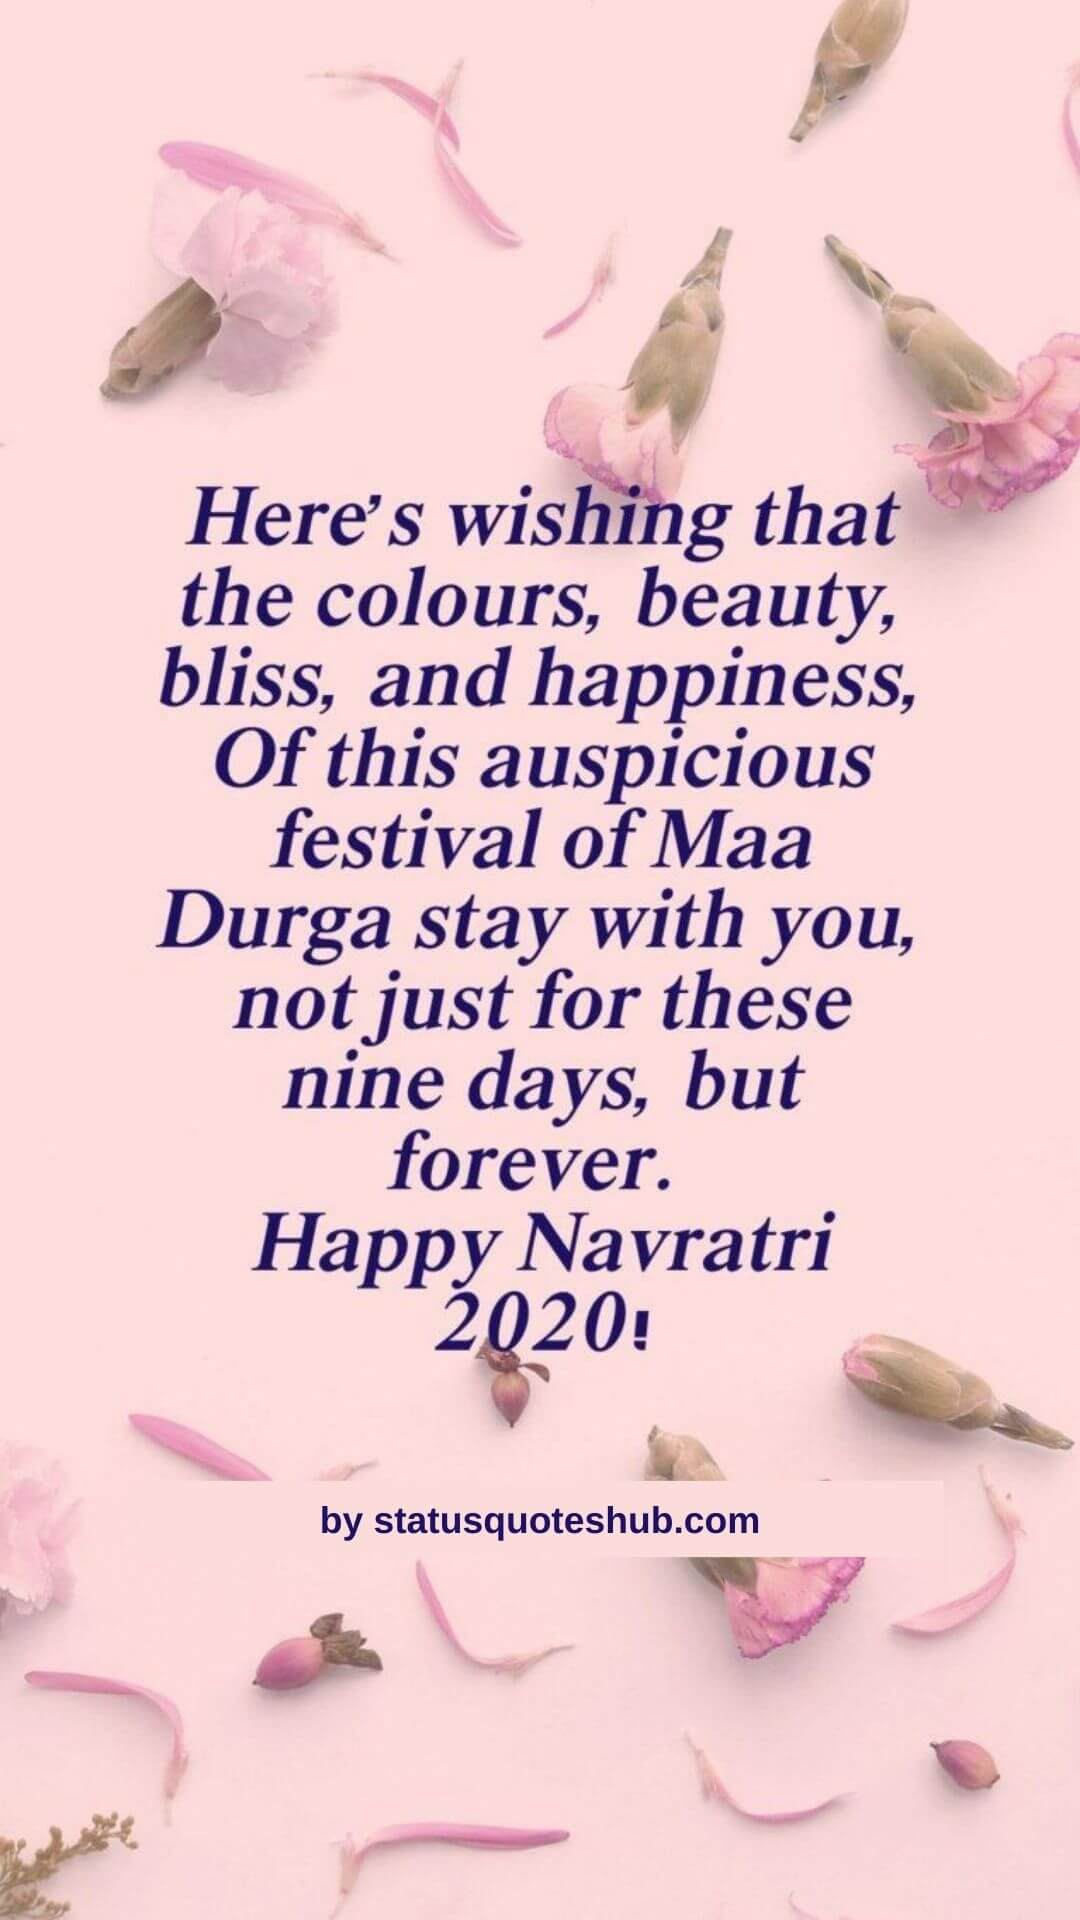 Navratri wishes and quotes